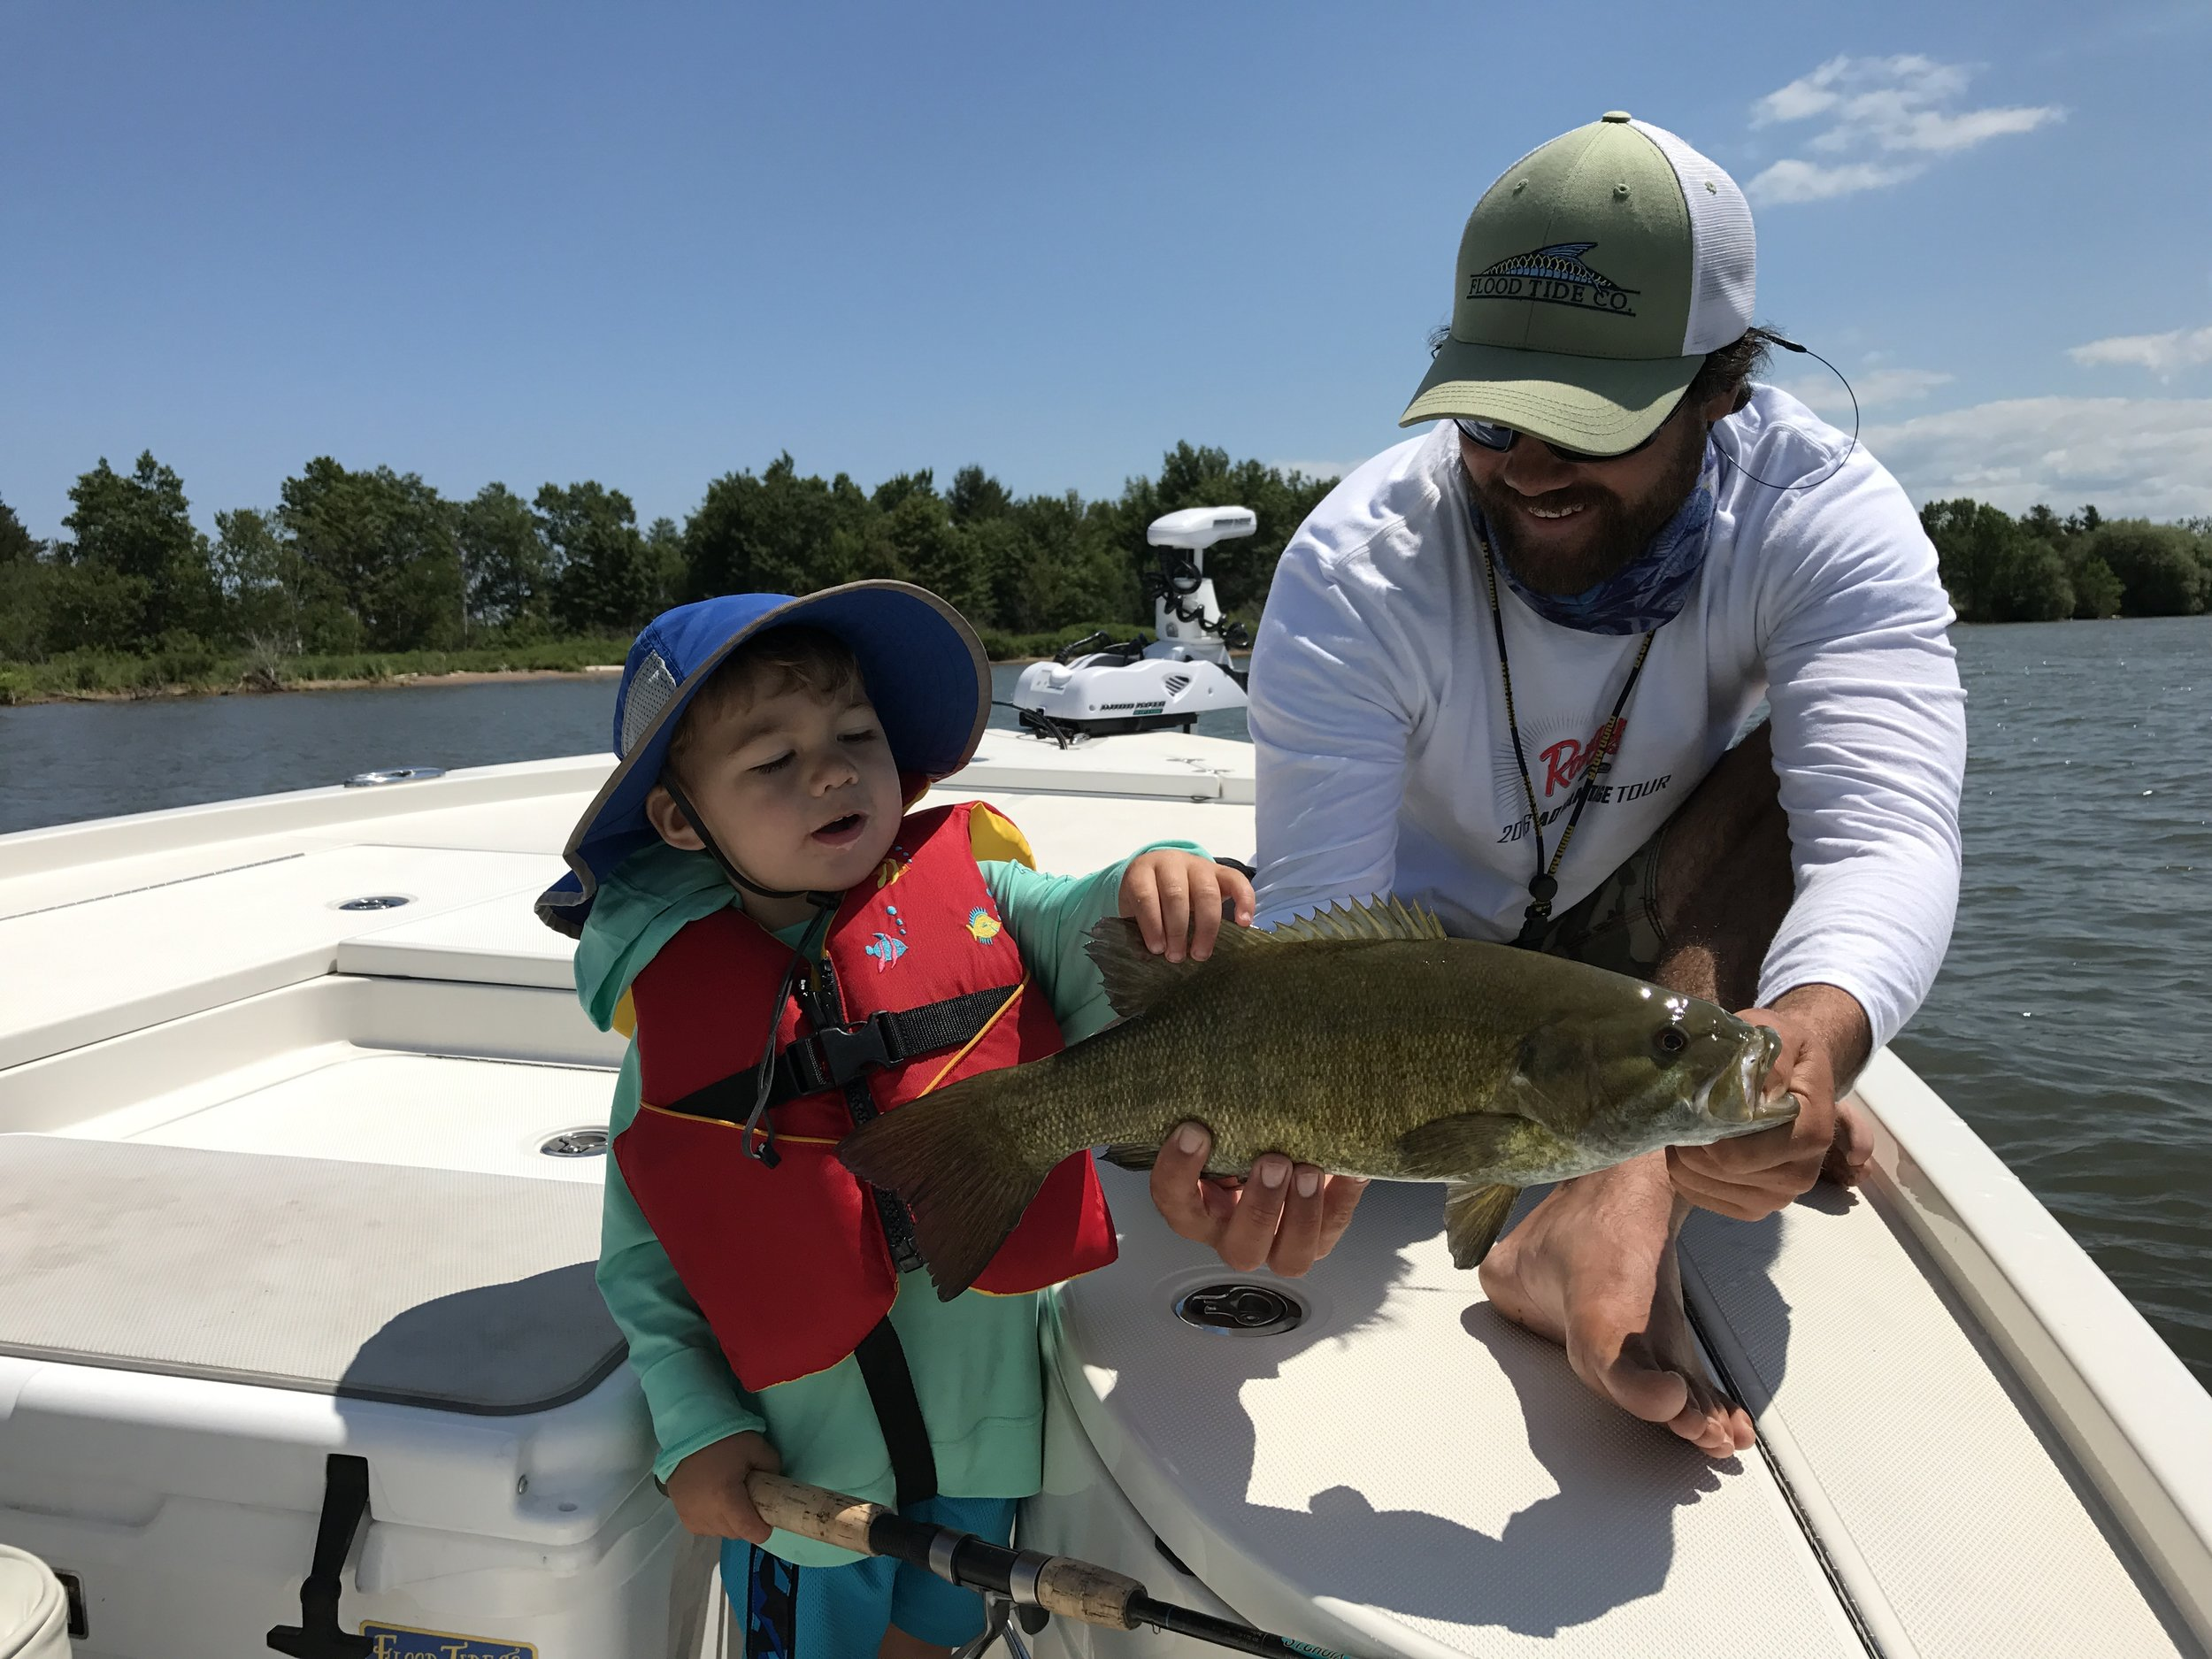 Capt. Luke and his son Jay with a Bay smallmouth